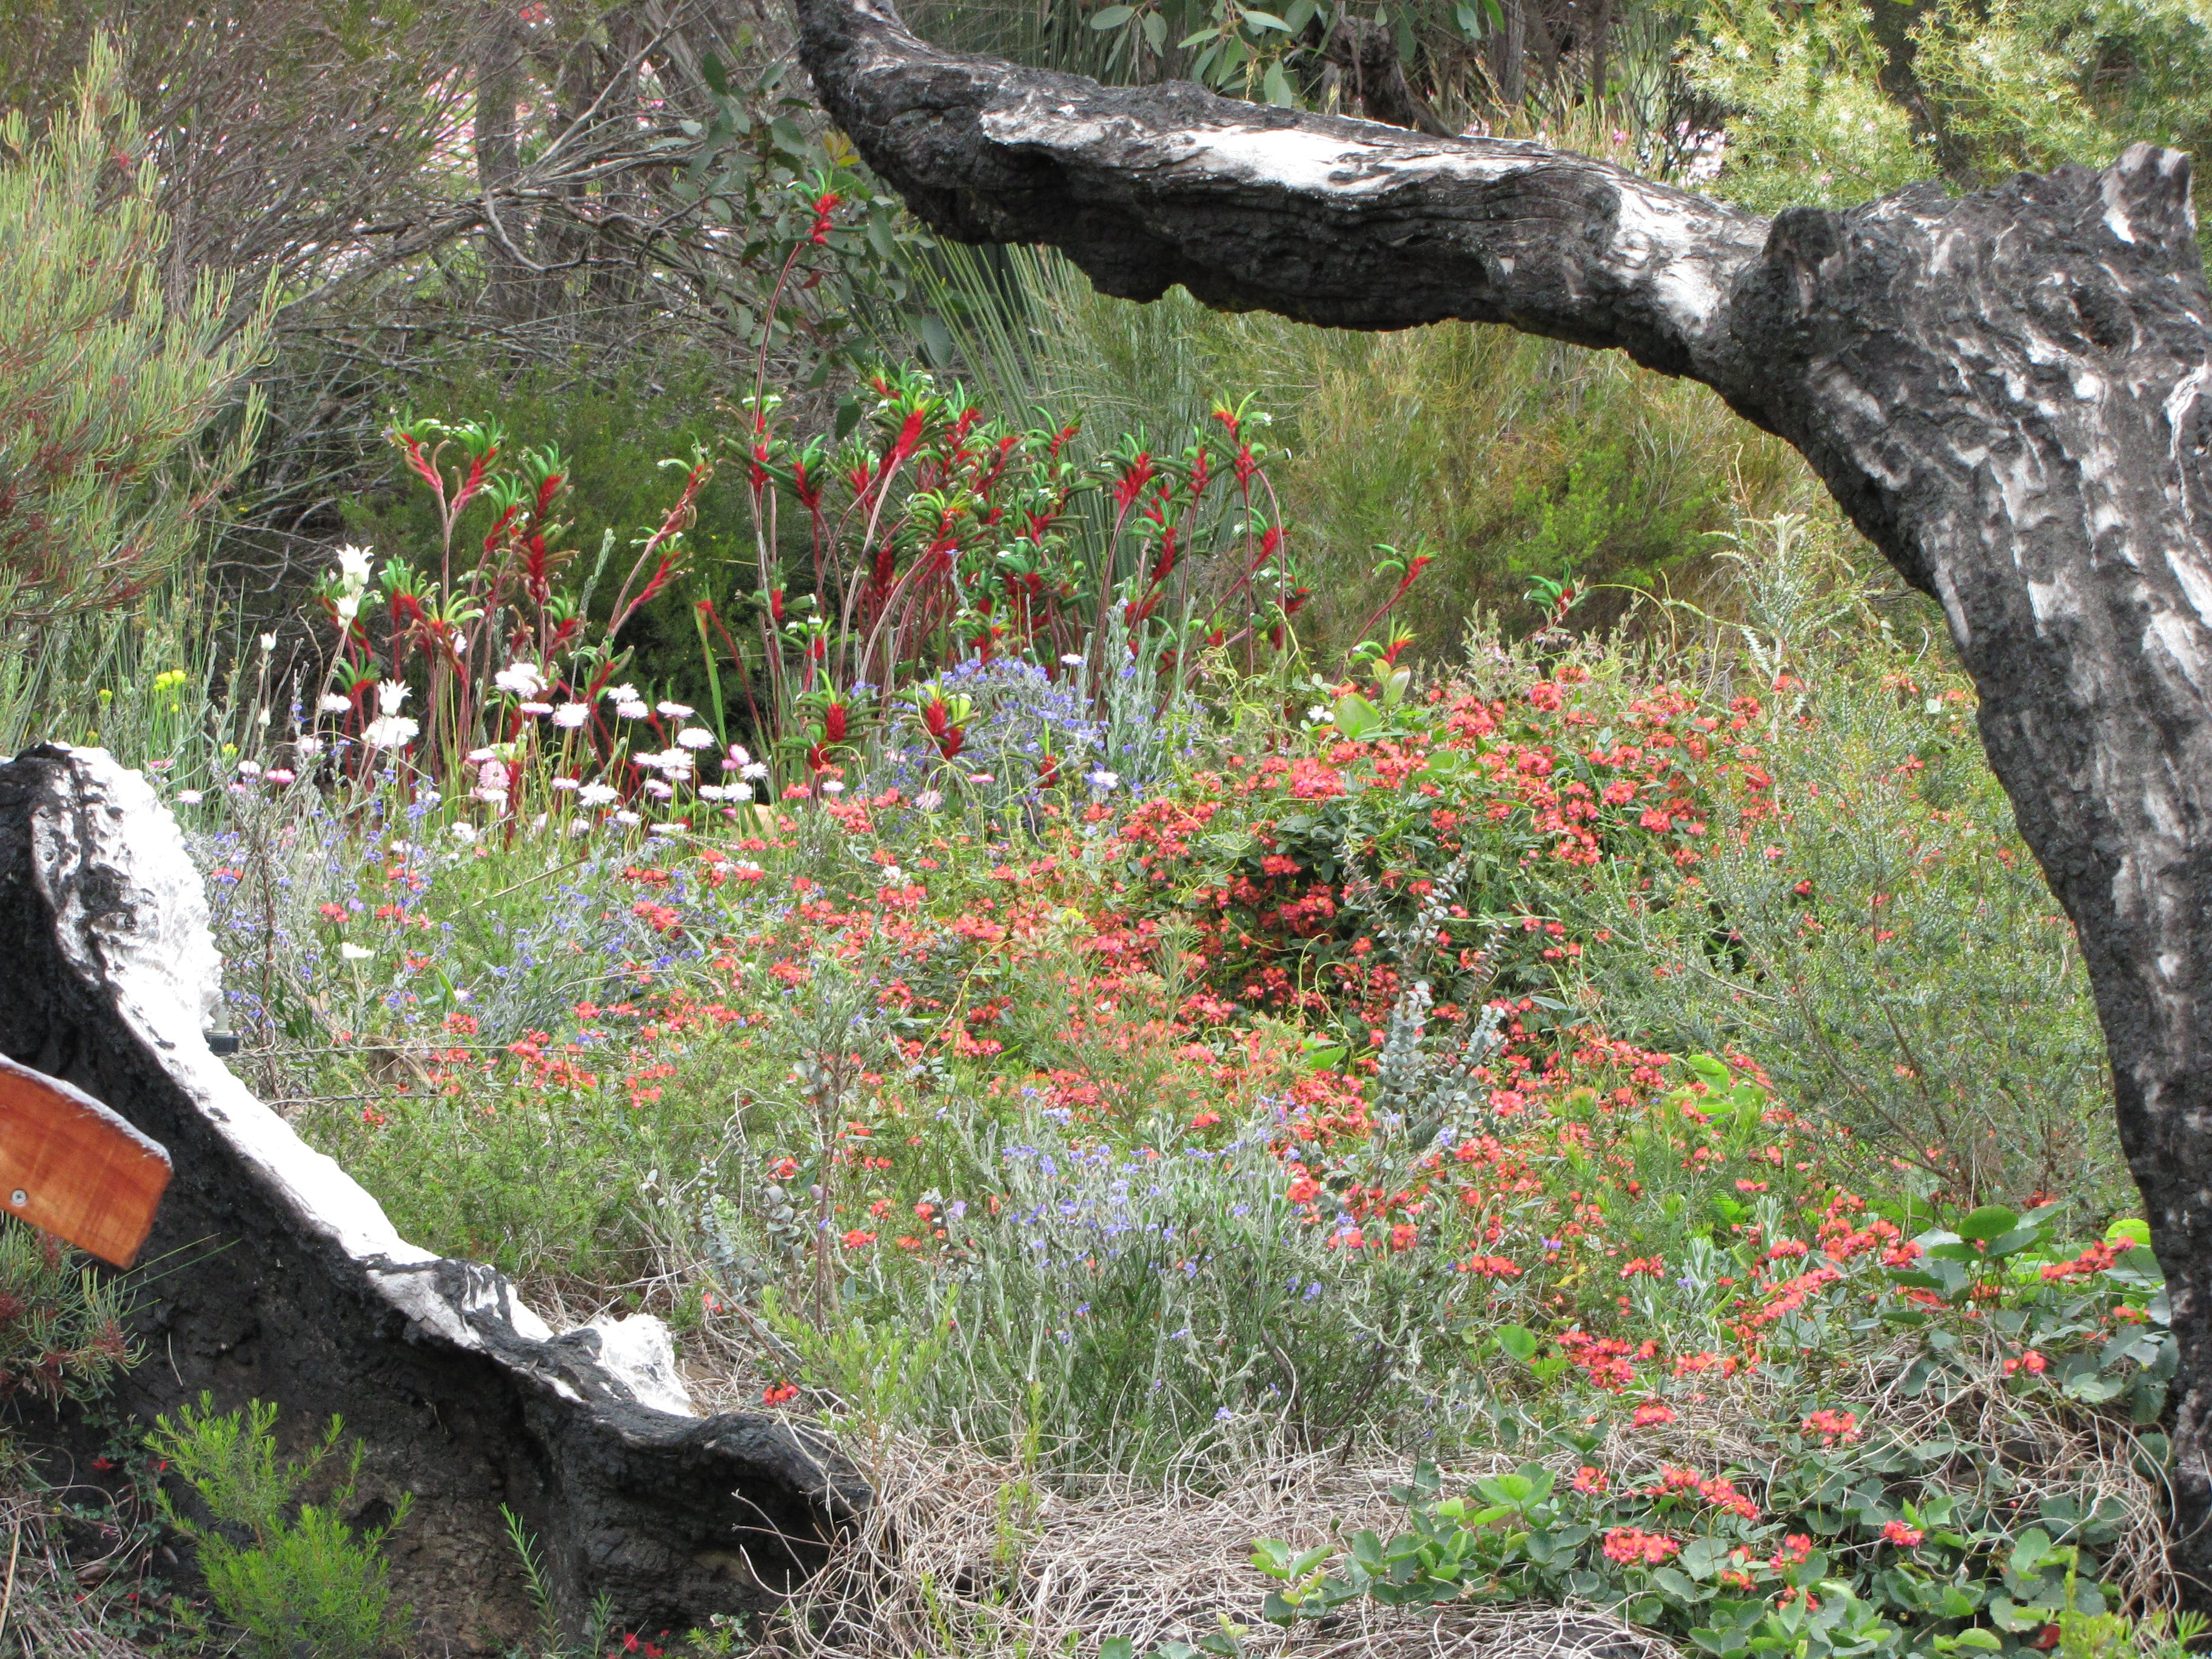 #Australian native plants at Stokes Bay Bush Garden